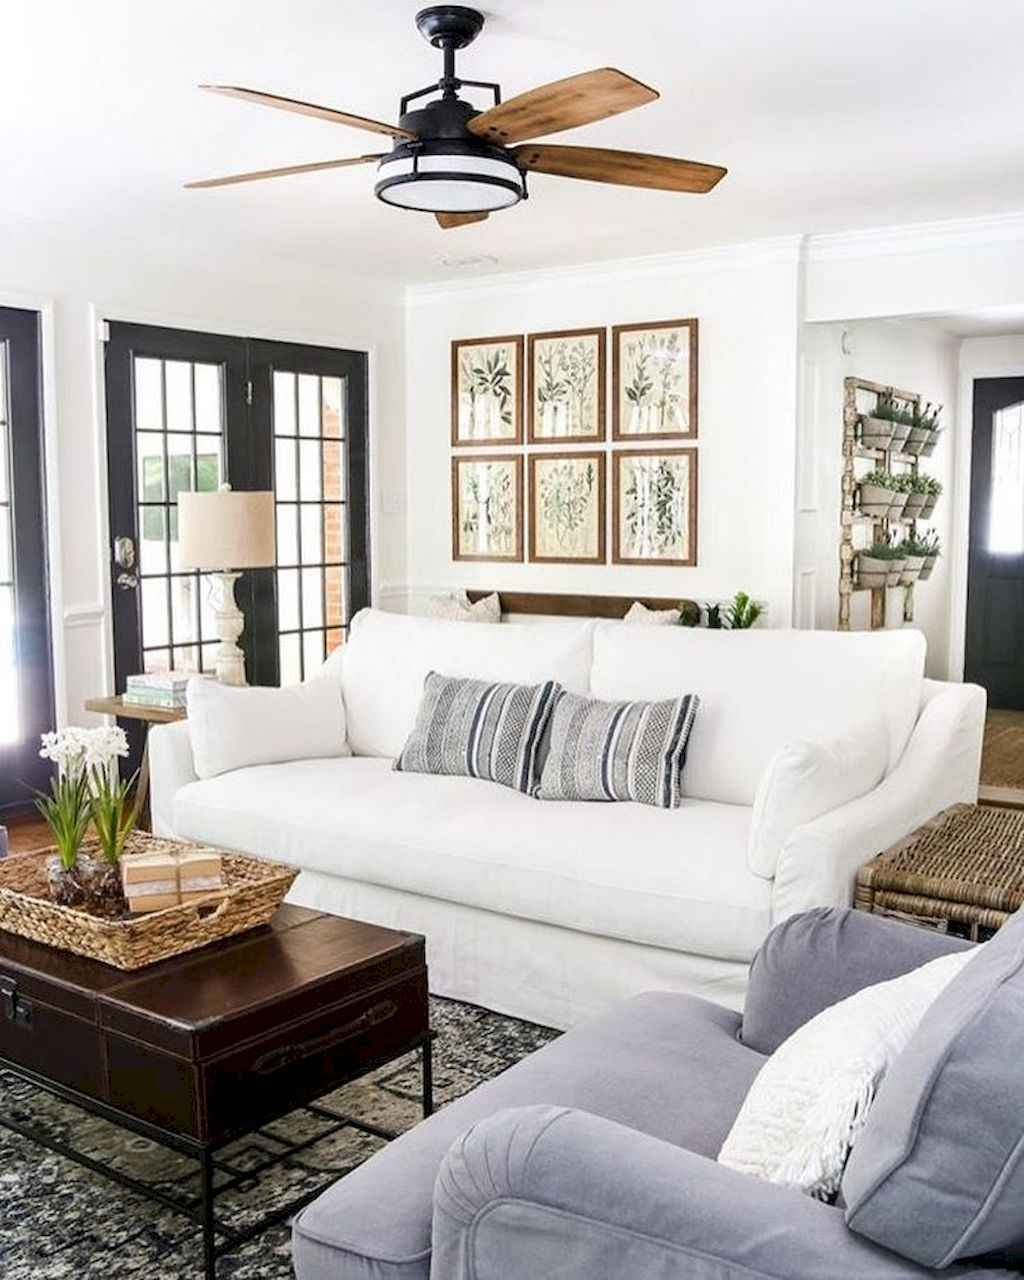 Cozy apartment decorating ideas on a budget (36)